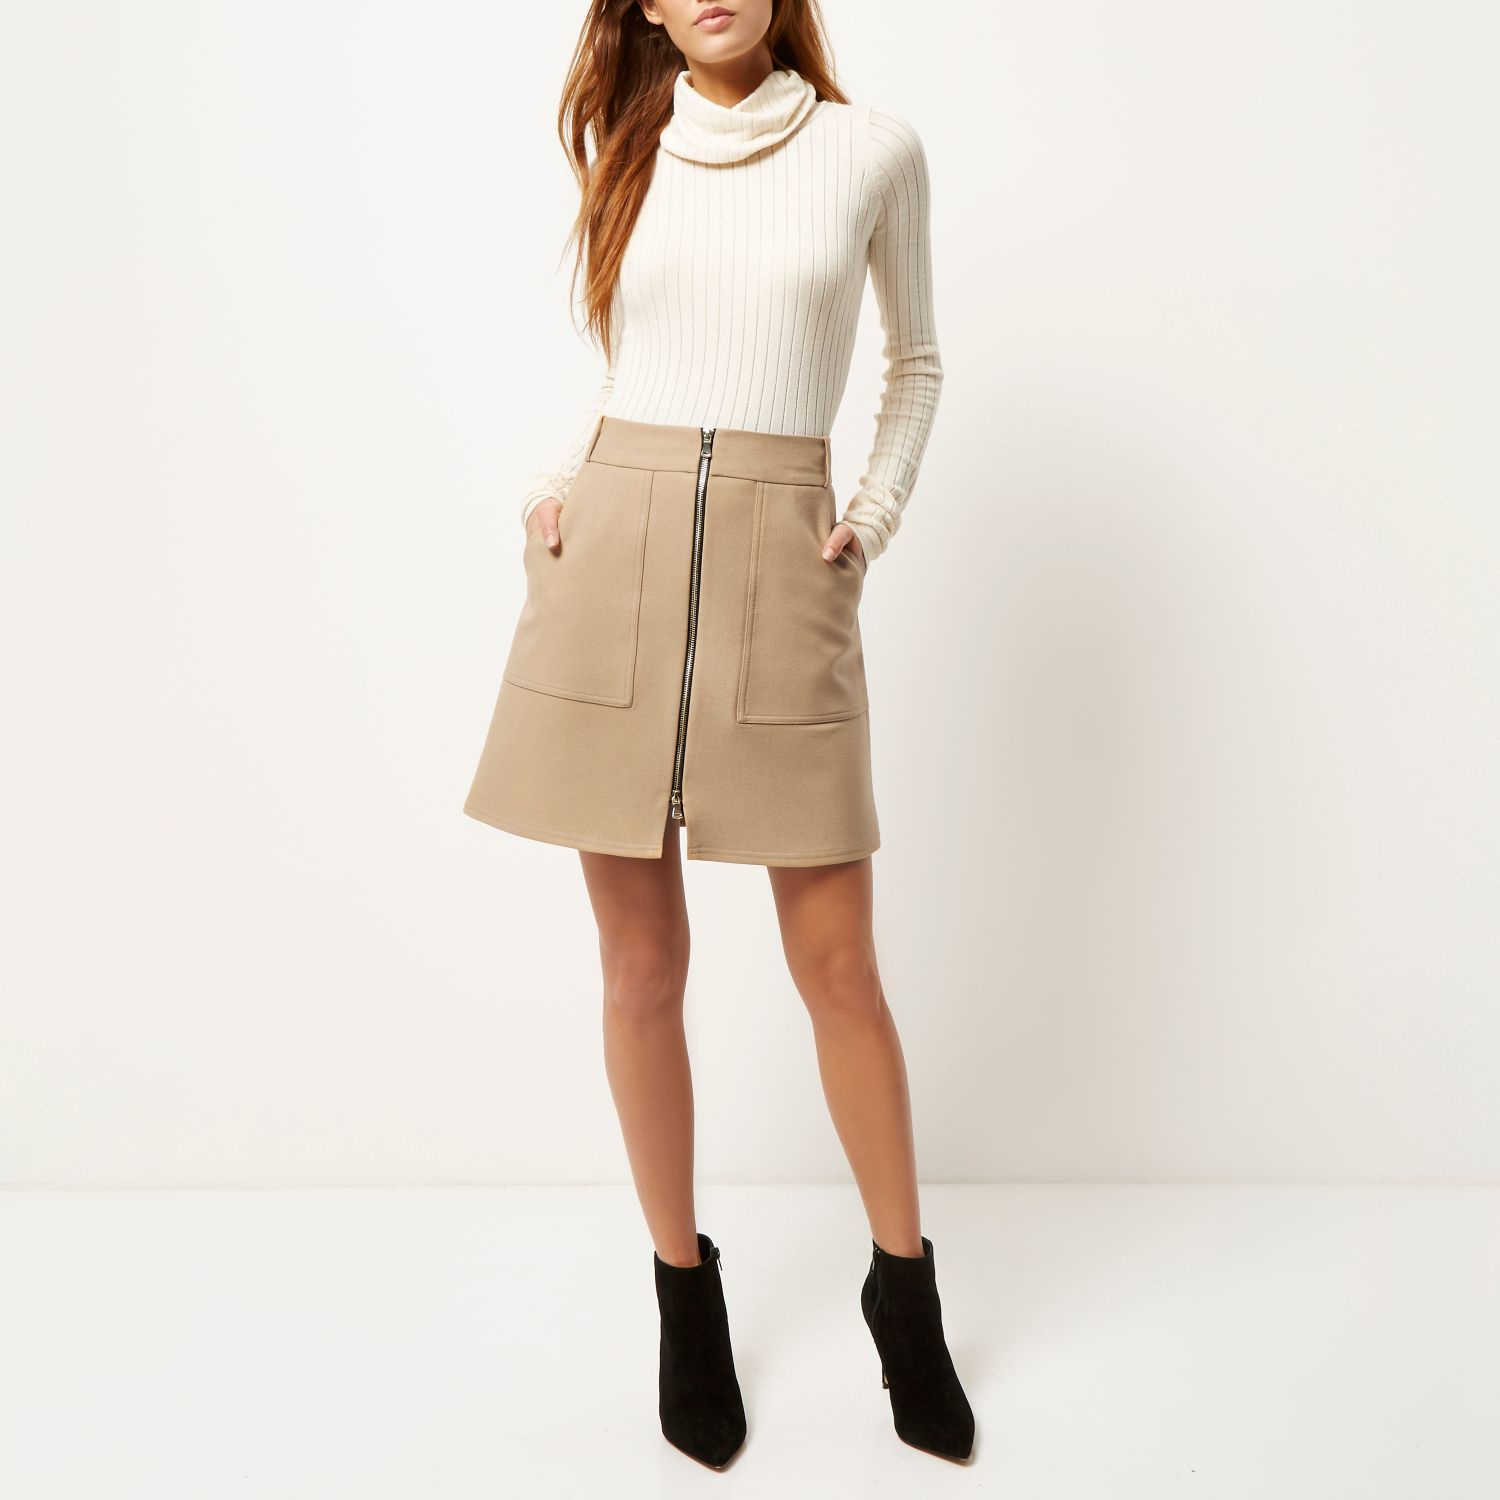 River island Camel Zip-up A-line Skirt in Natural | Lyst